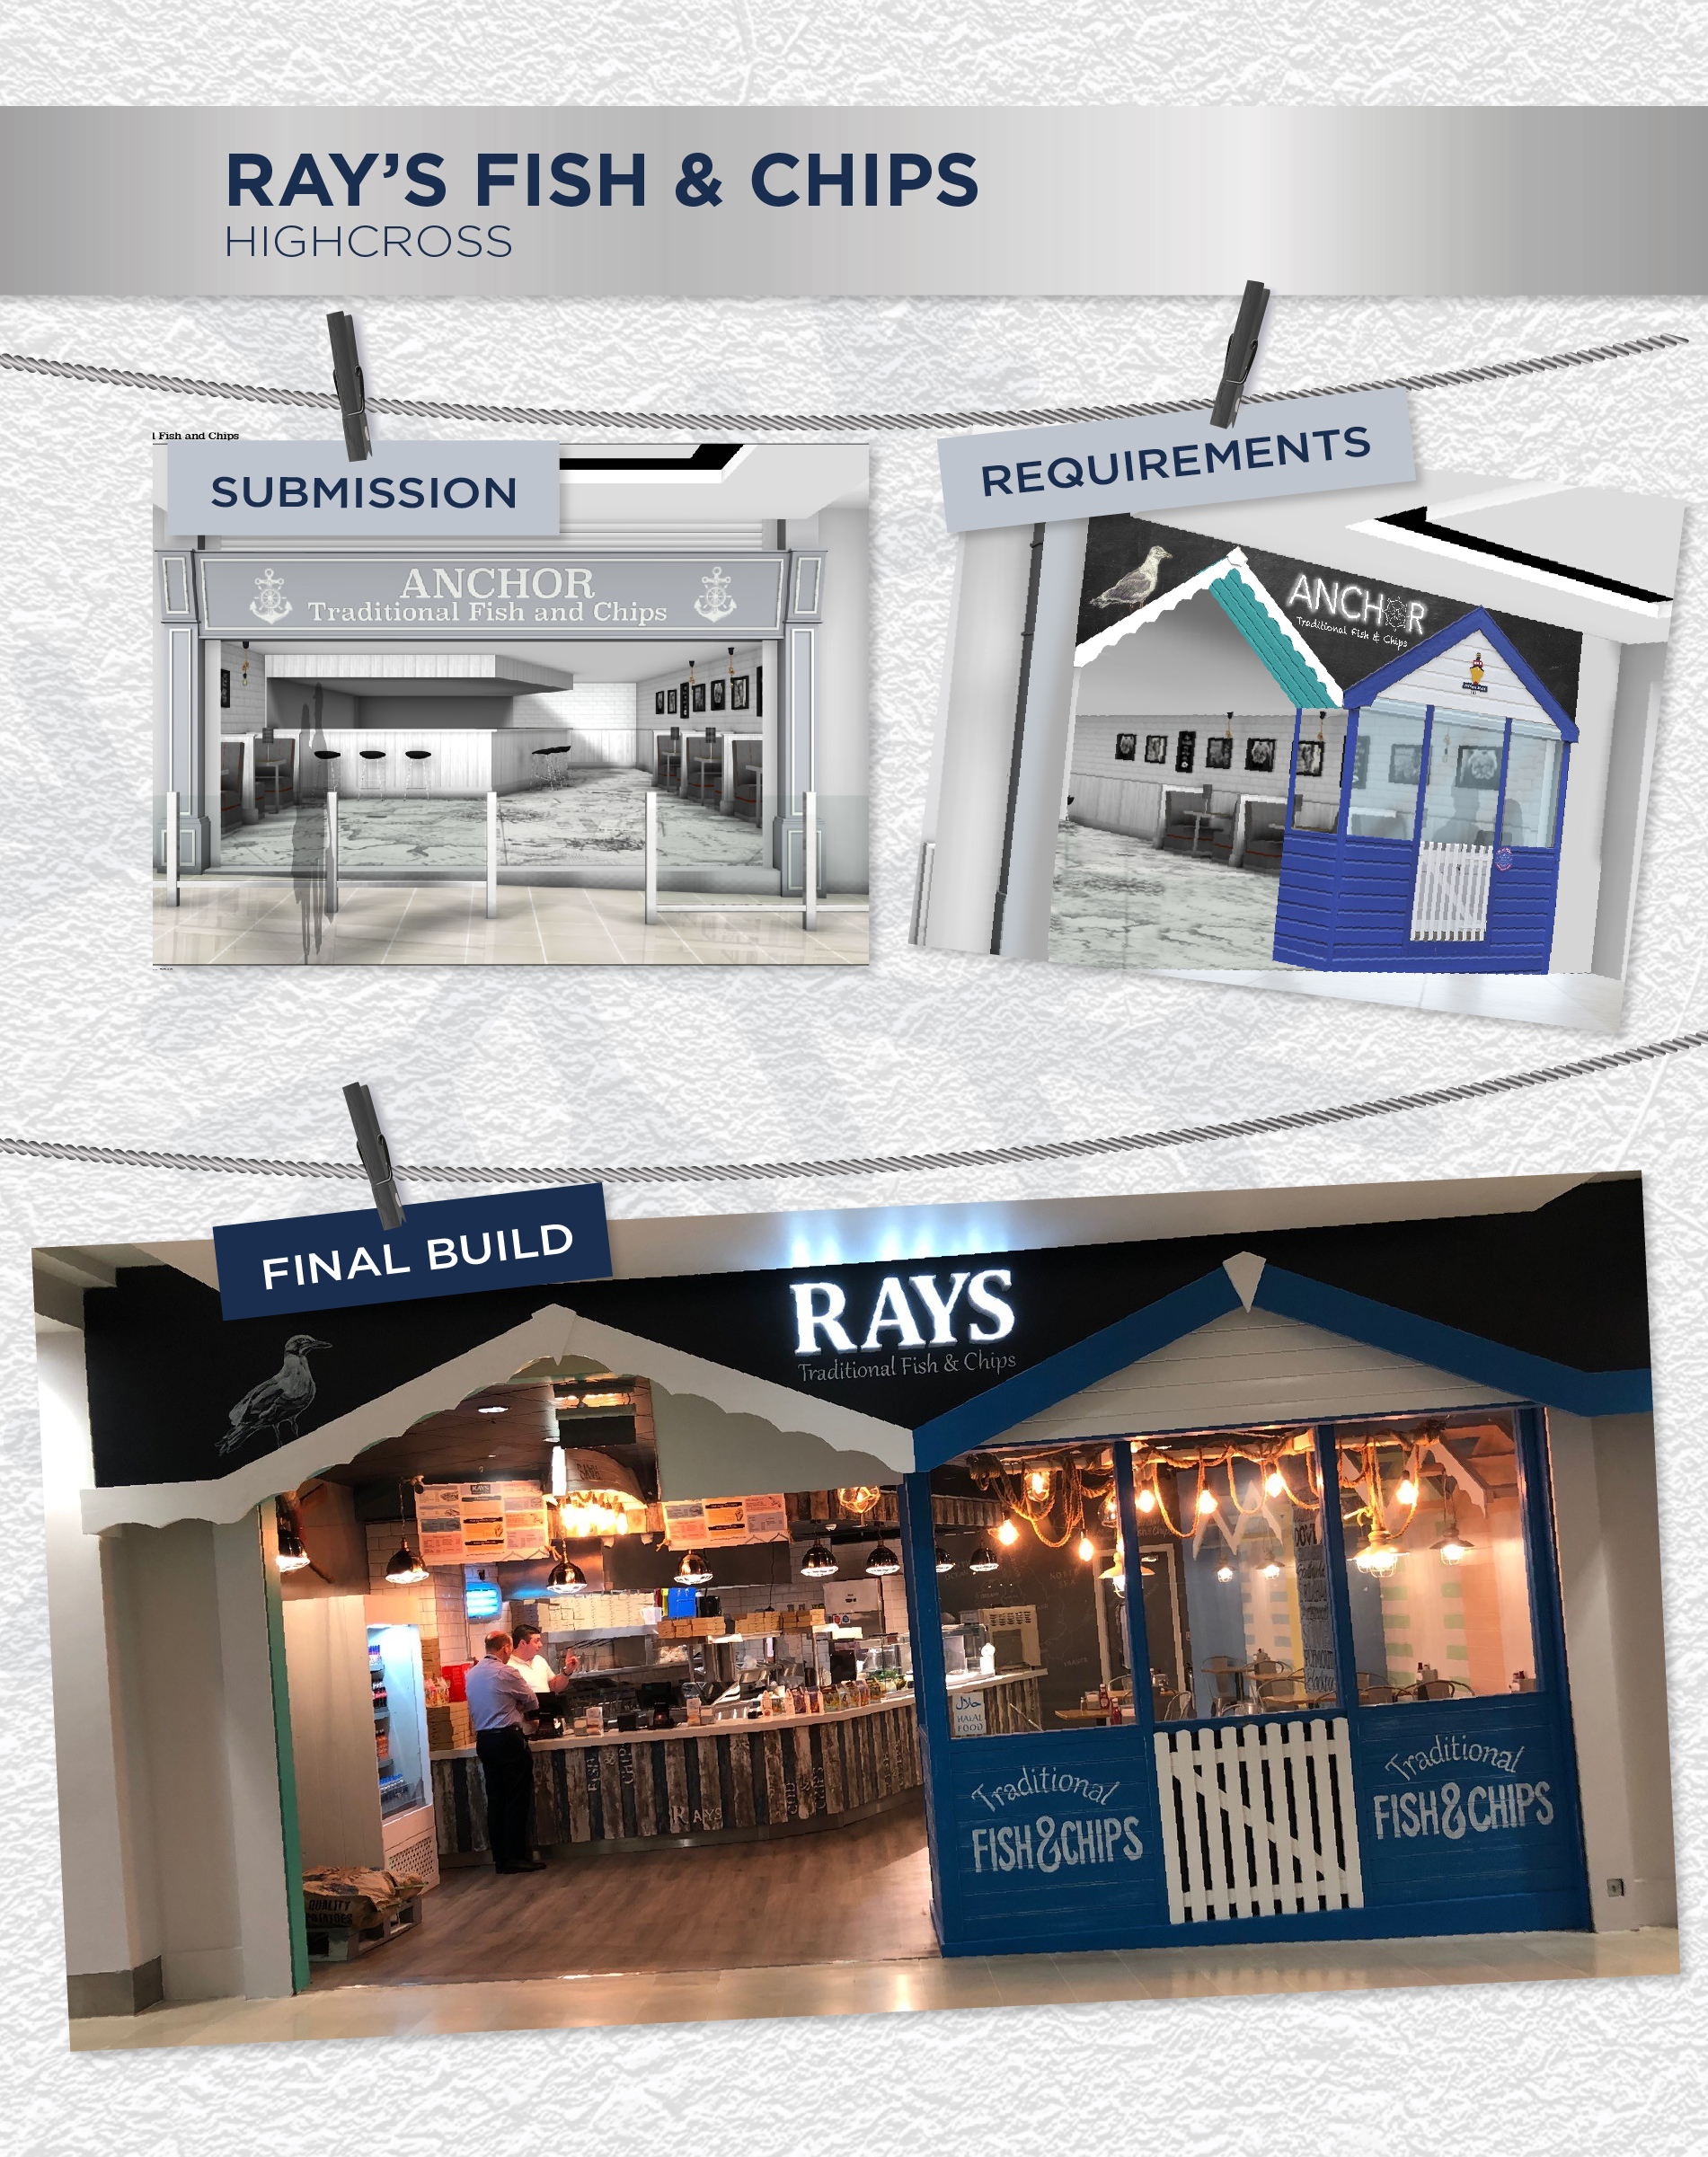 Beyonds retail design management team Ray's fish & chips store front